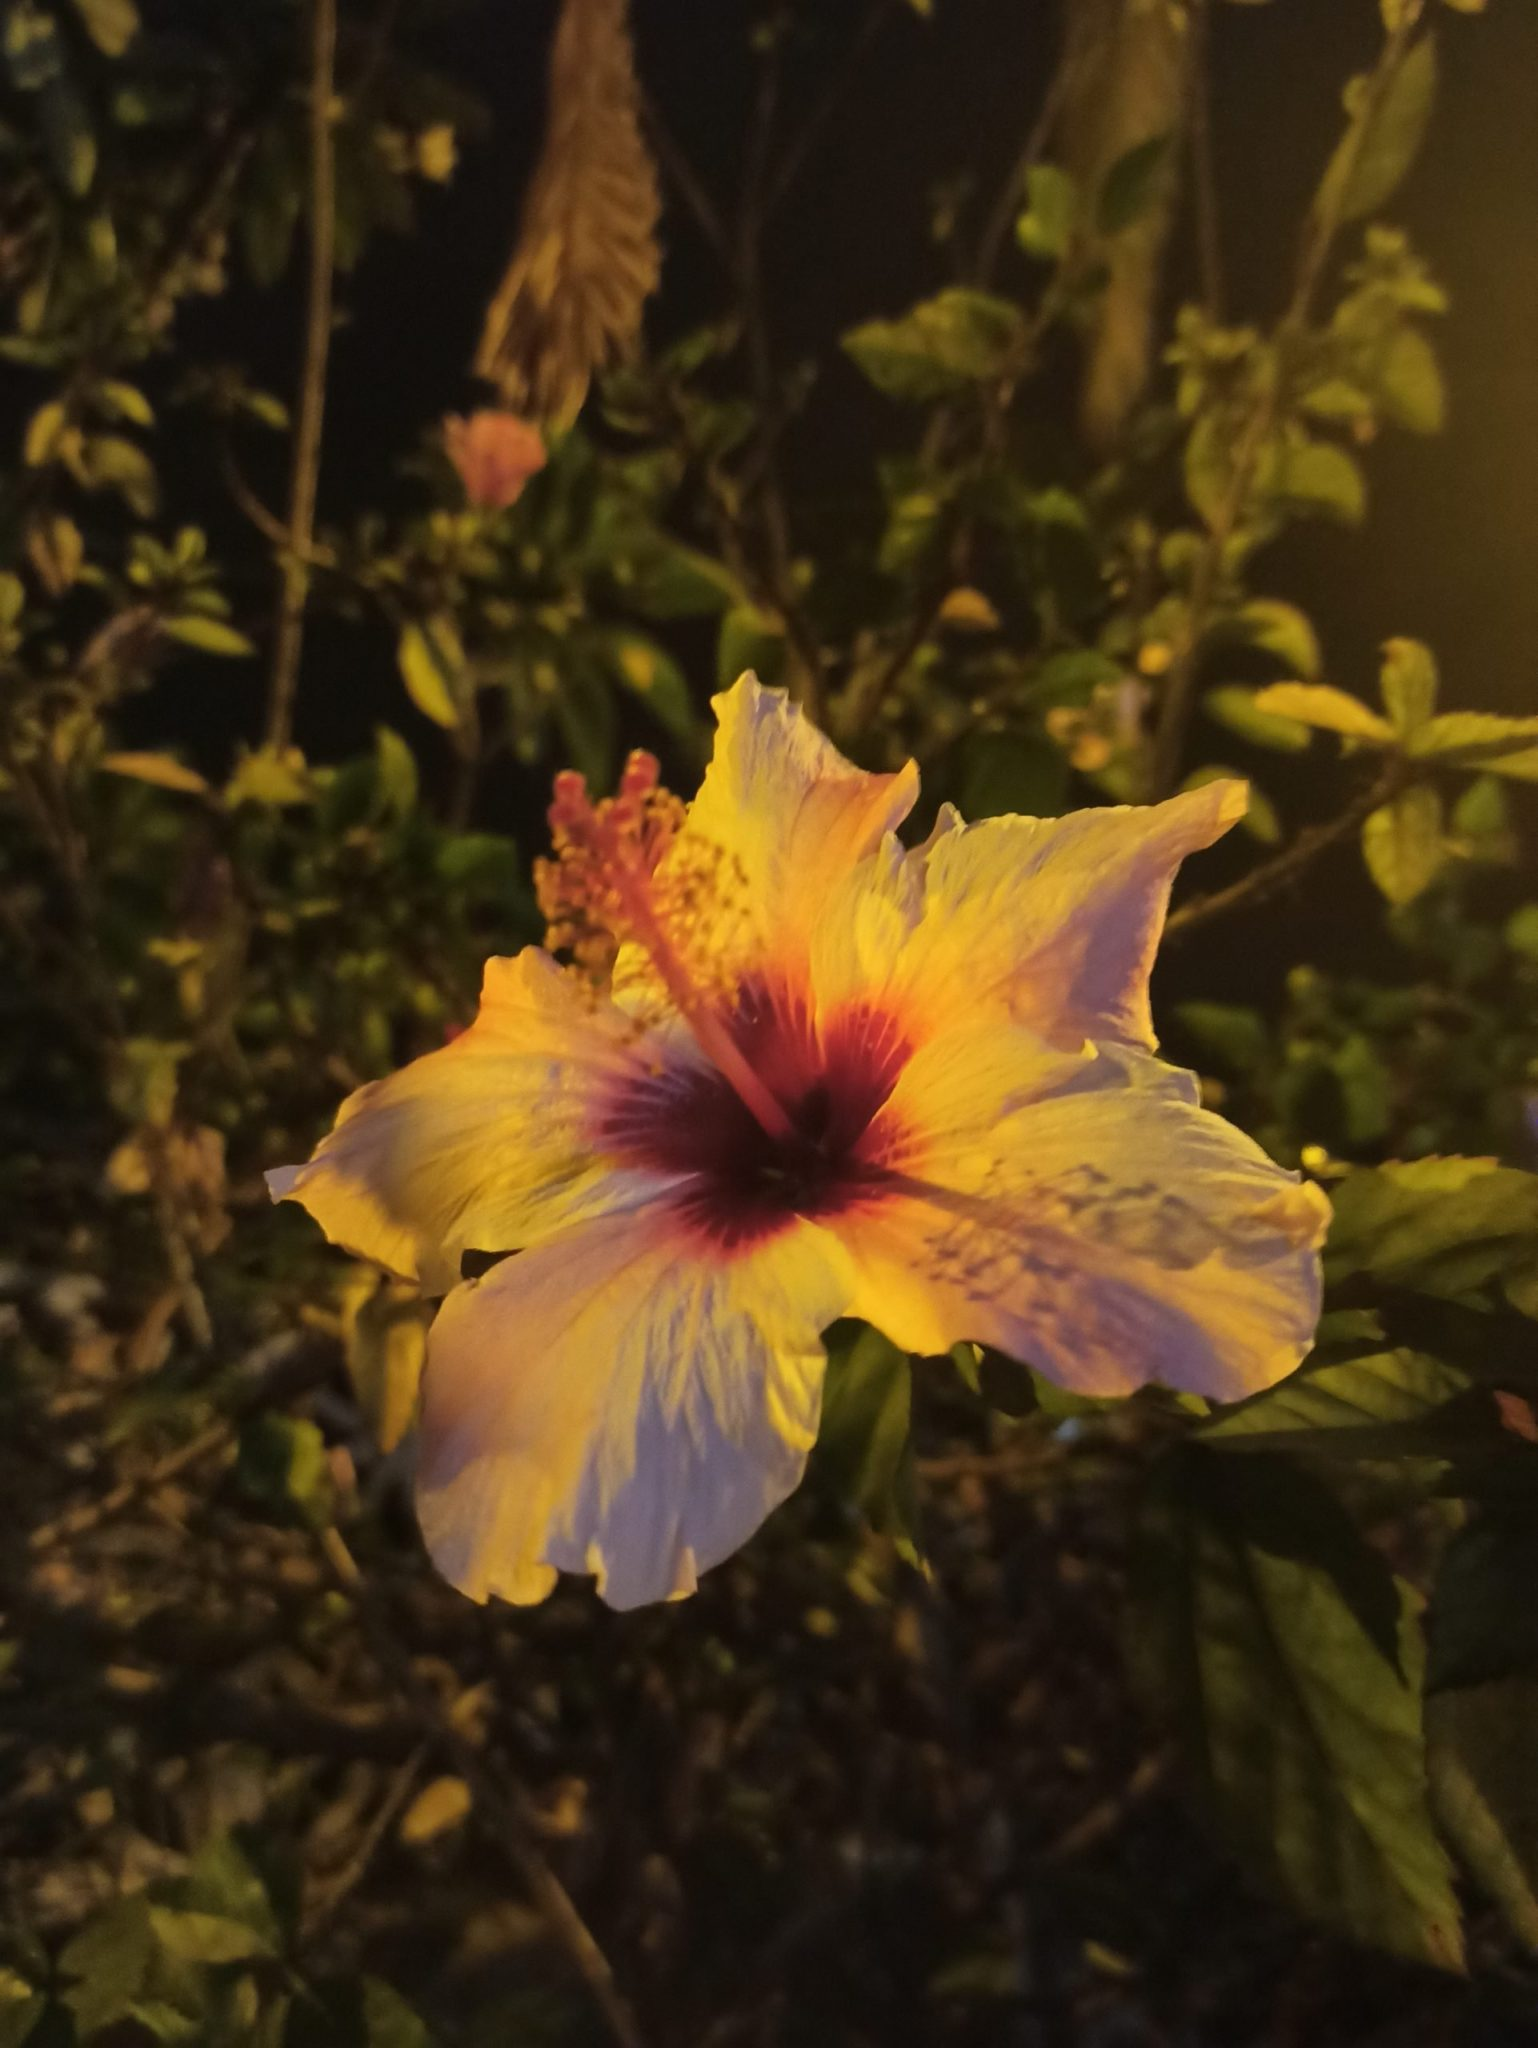 A photo of a Hibiscus flower, which Amanda photographed after moving away from Madrid.